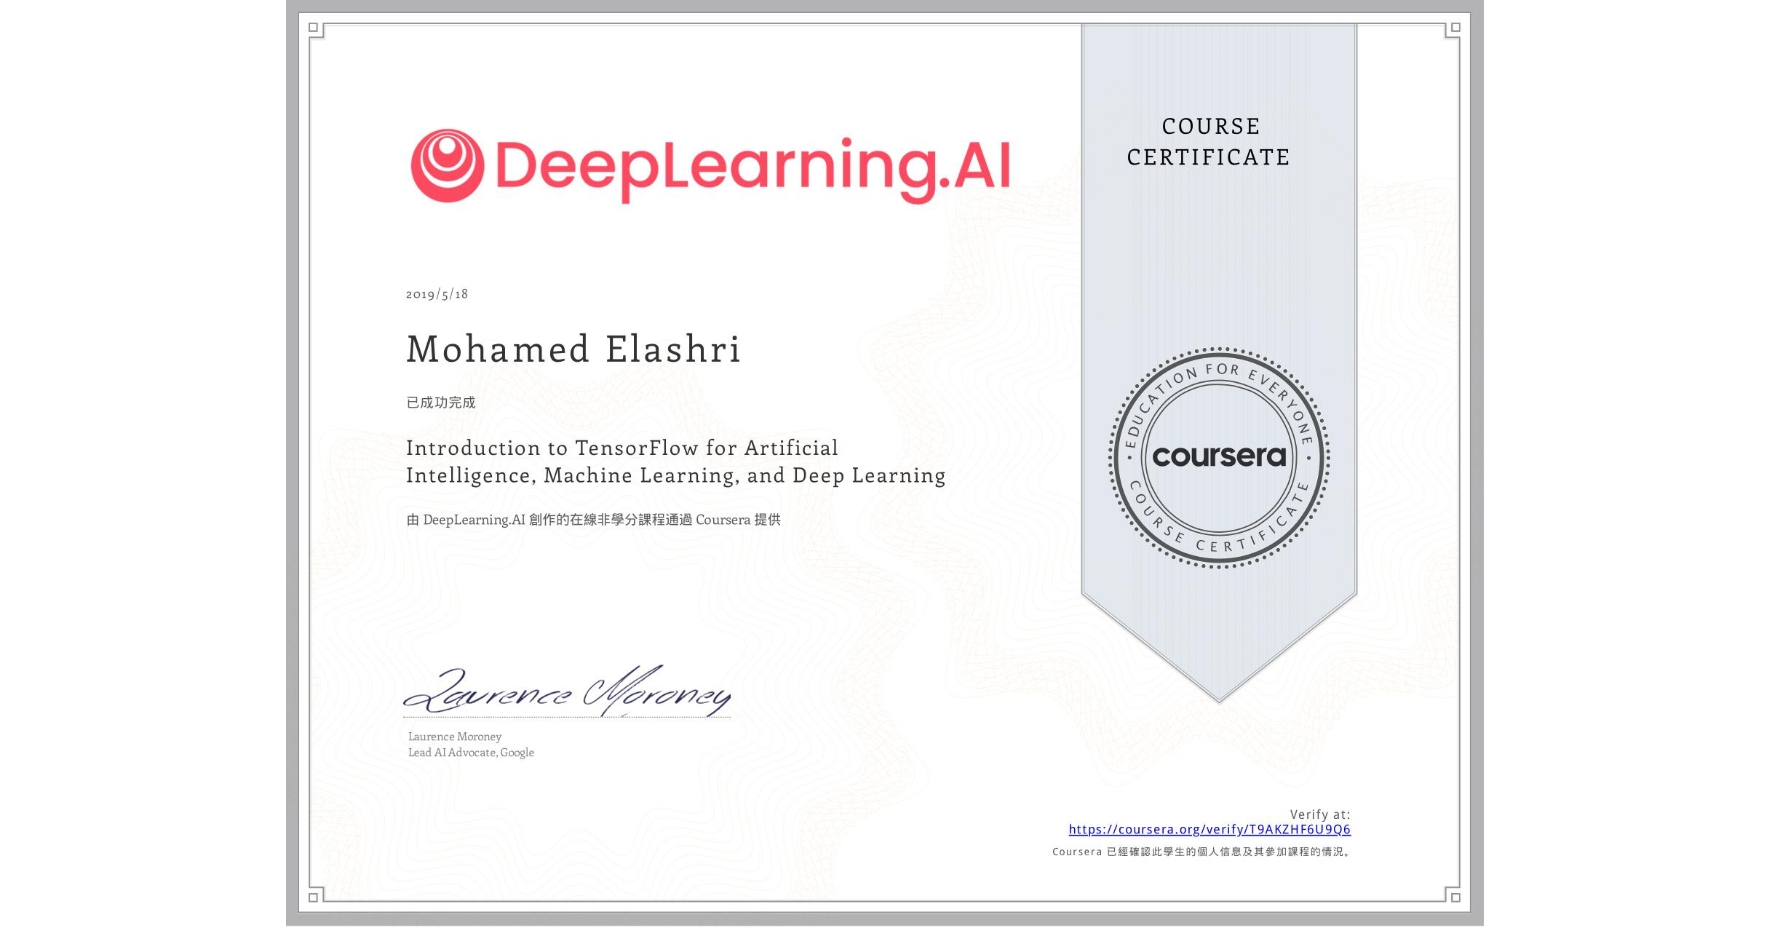 View certificate for Mohamed Elashri, Introduction to TensorFlow for Artificial Intelligence, Machine Learning, and Deep Learning, an online non-credit course authorized by DeepLearning.AI and offered through Coursera